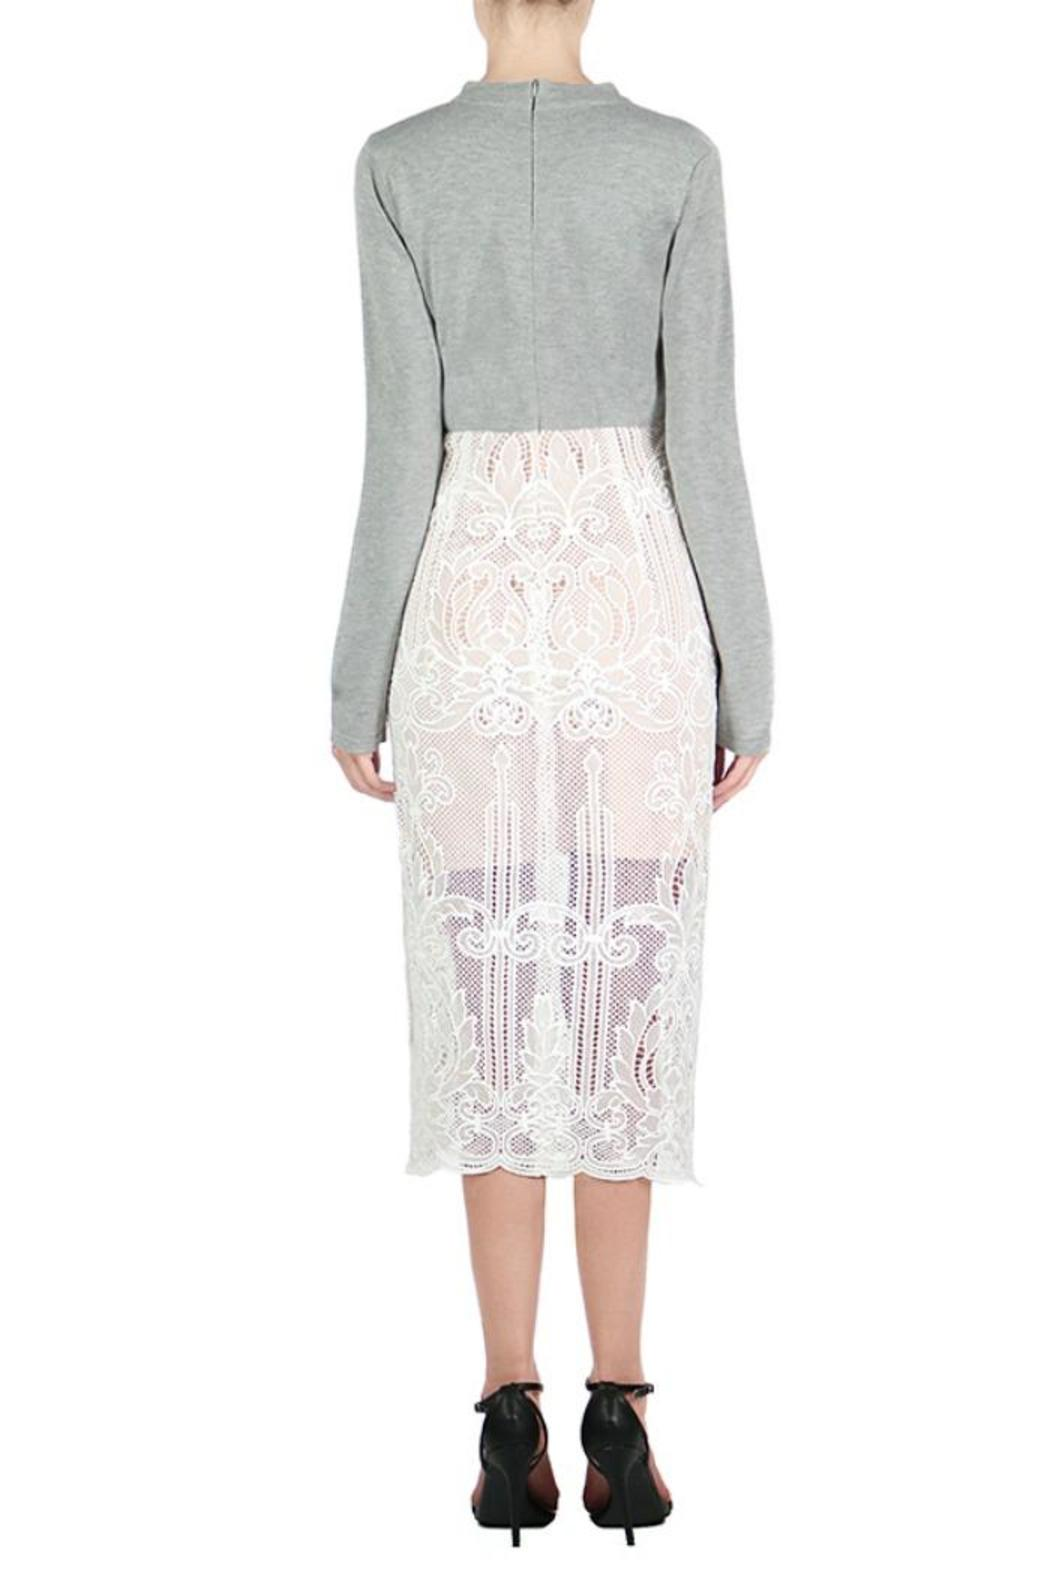 Endless Rose Grey Lace Dress - Front Full Image